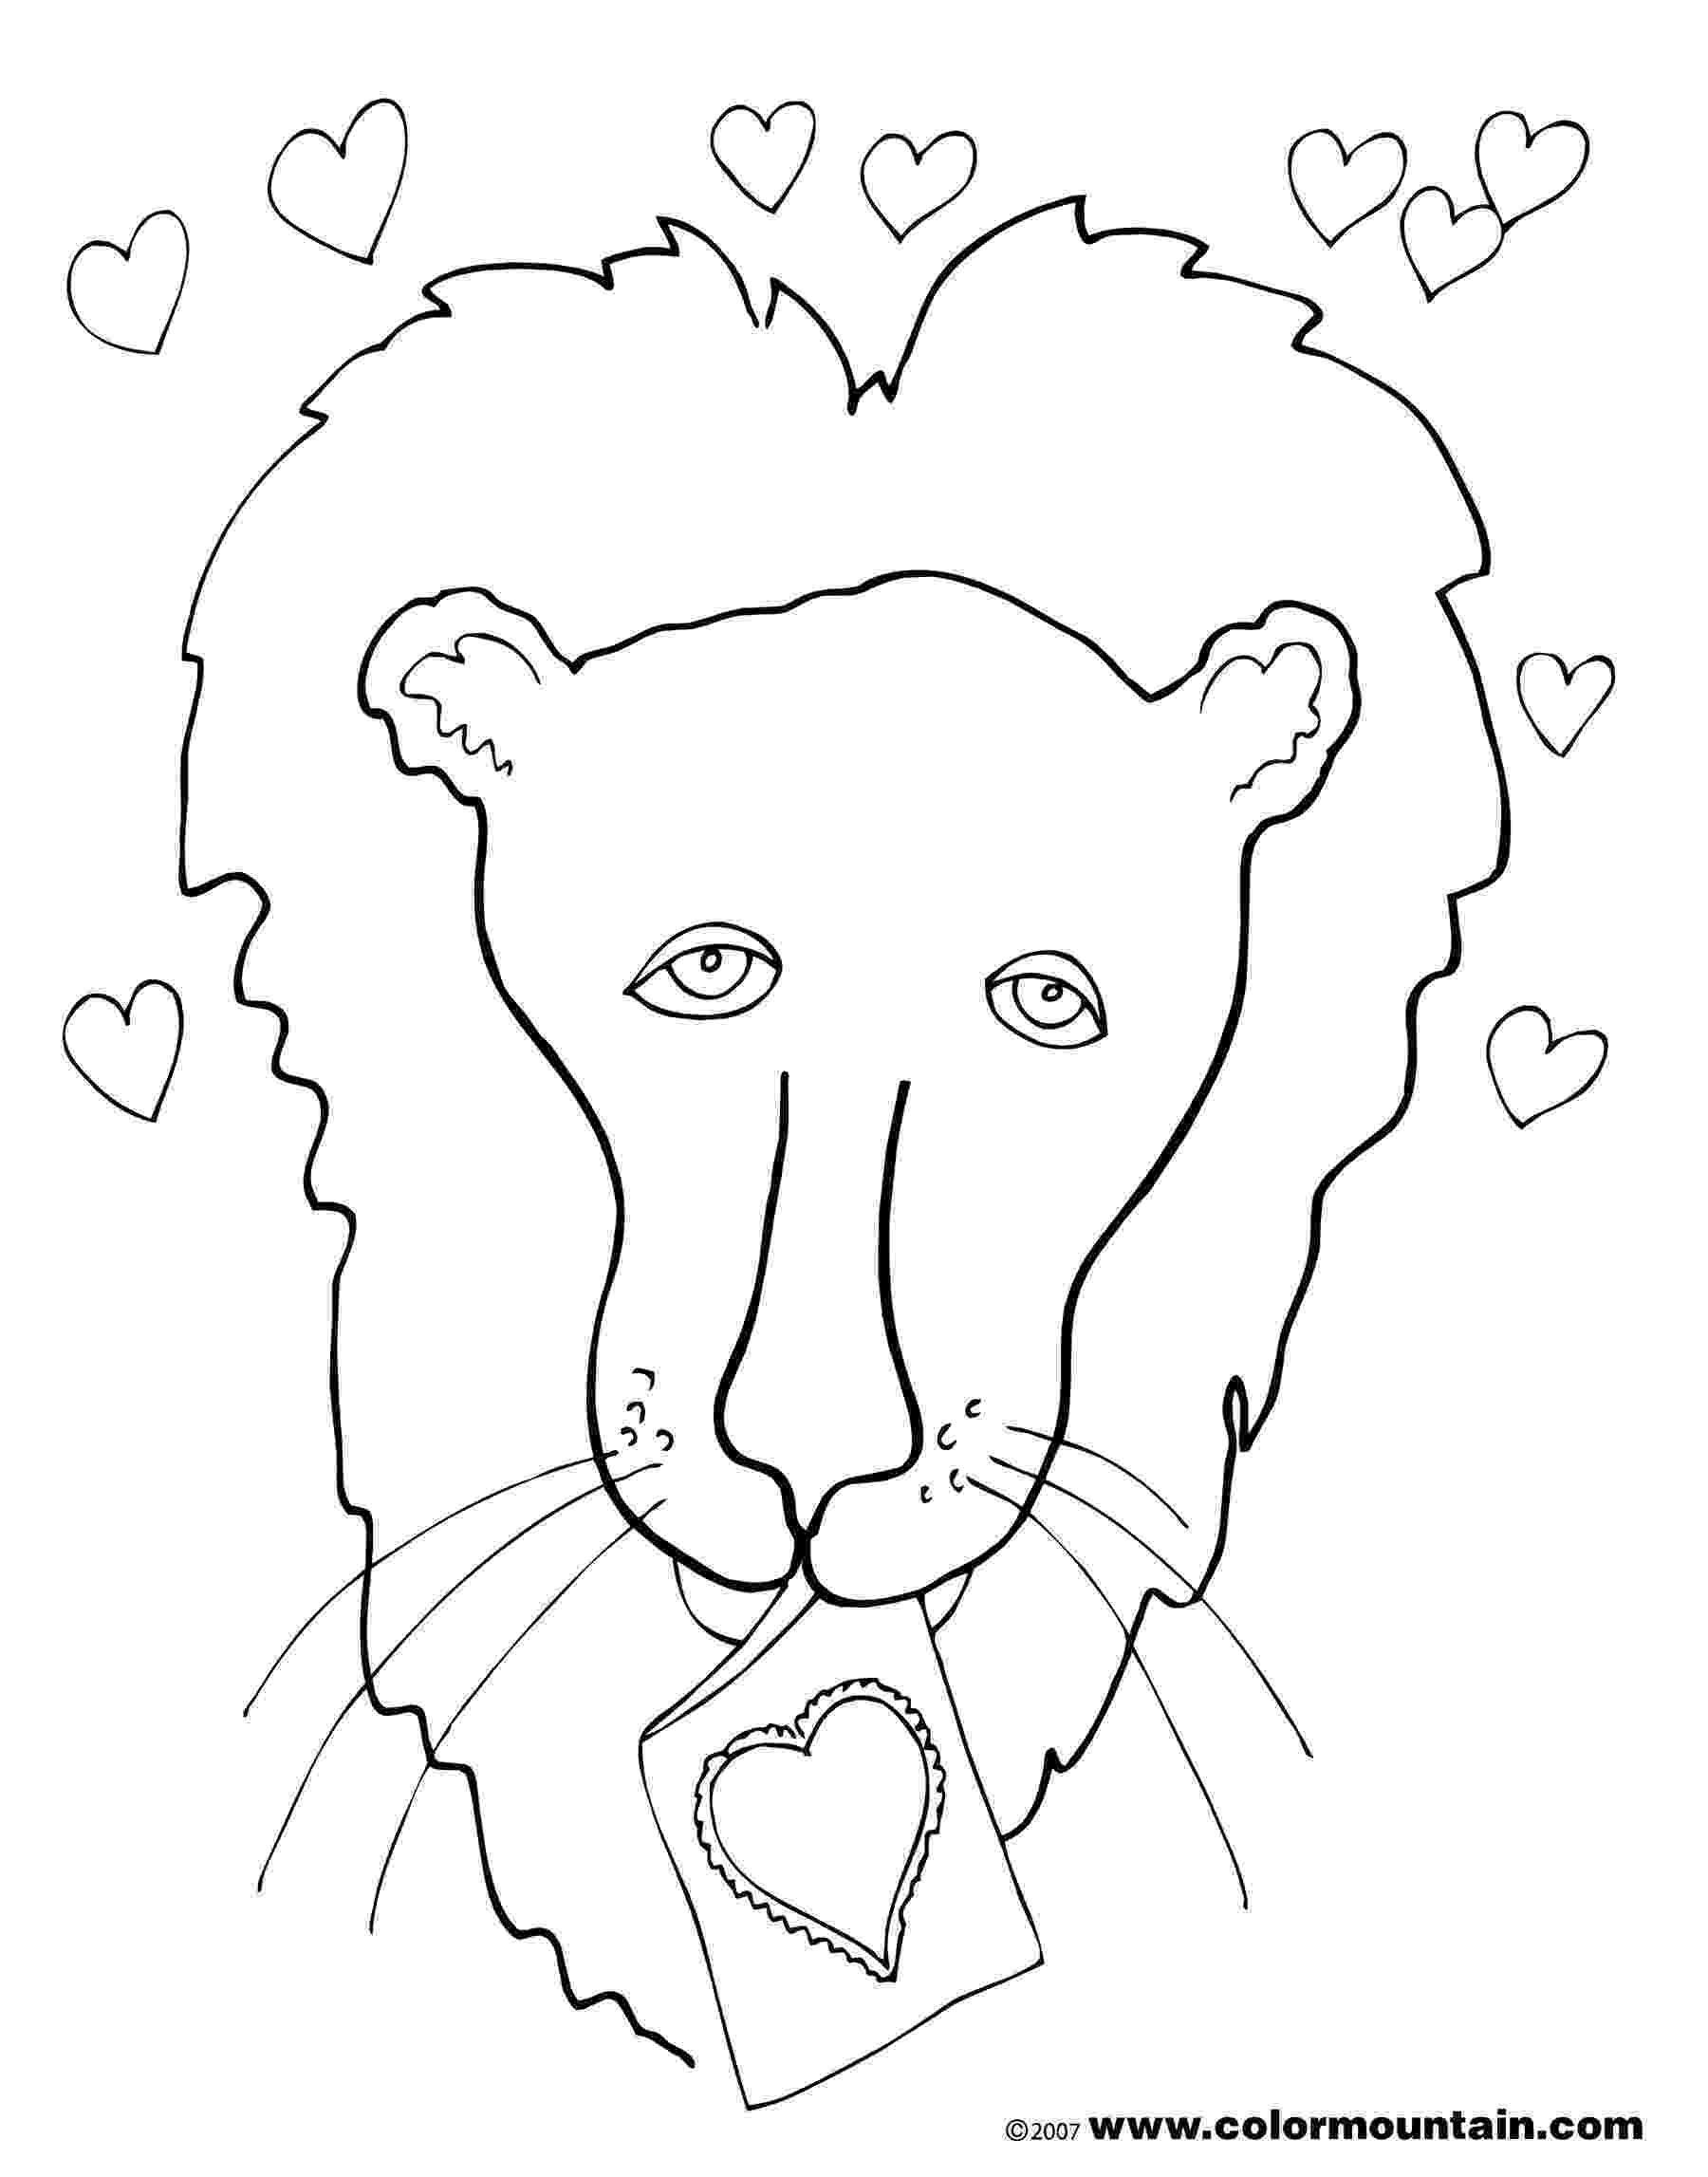 mountain lion coloring pages sitting cougar coloring page free printable coloring pages pages lion coloring mountain